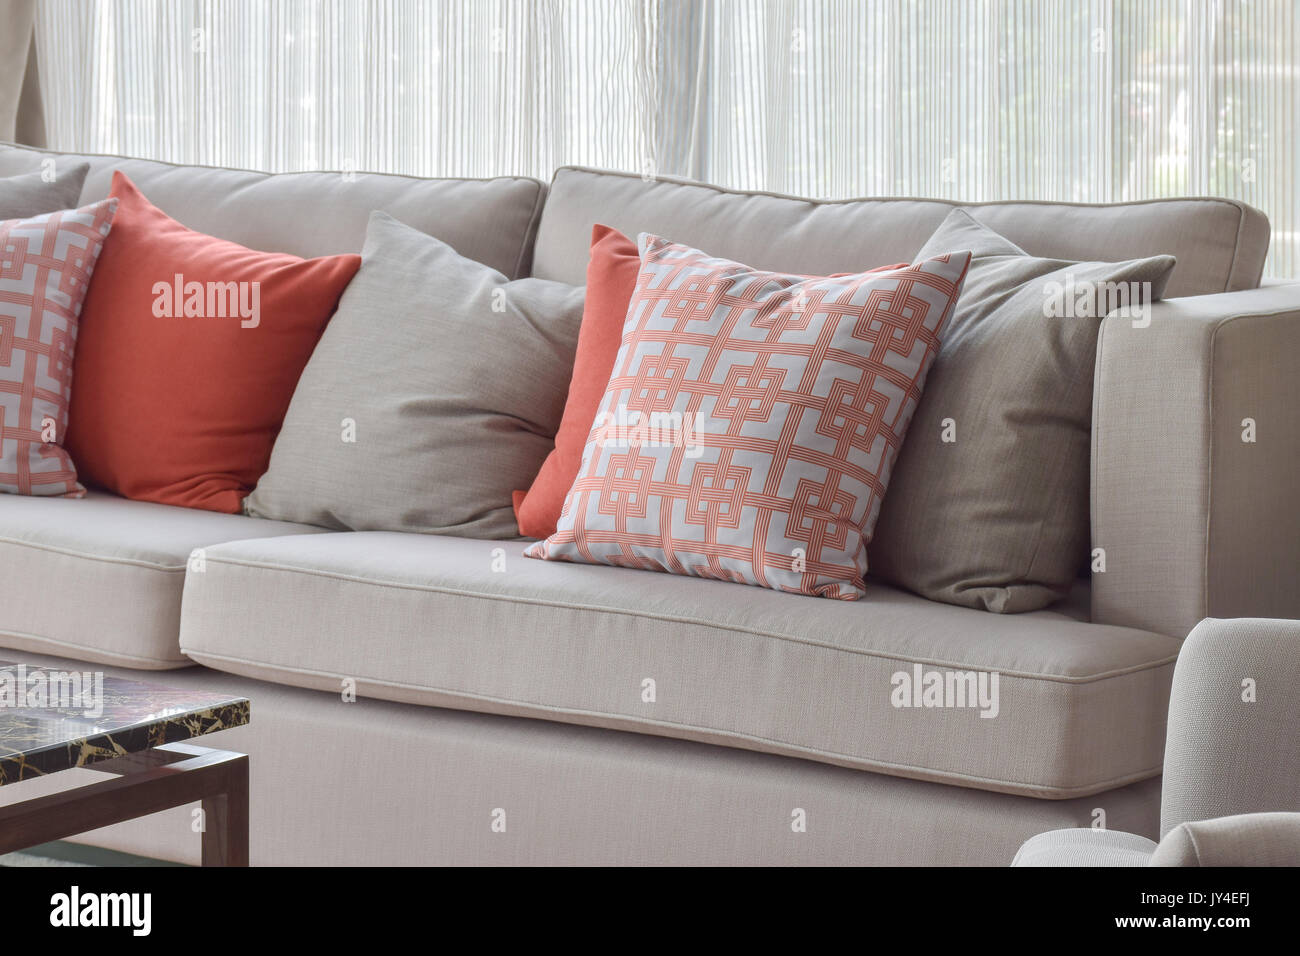 Chinese pattern pillow, red and gray pillows setting on light gray comfy sofa - Stock Image